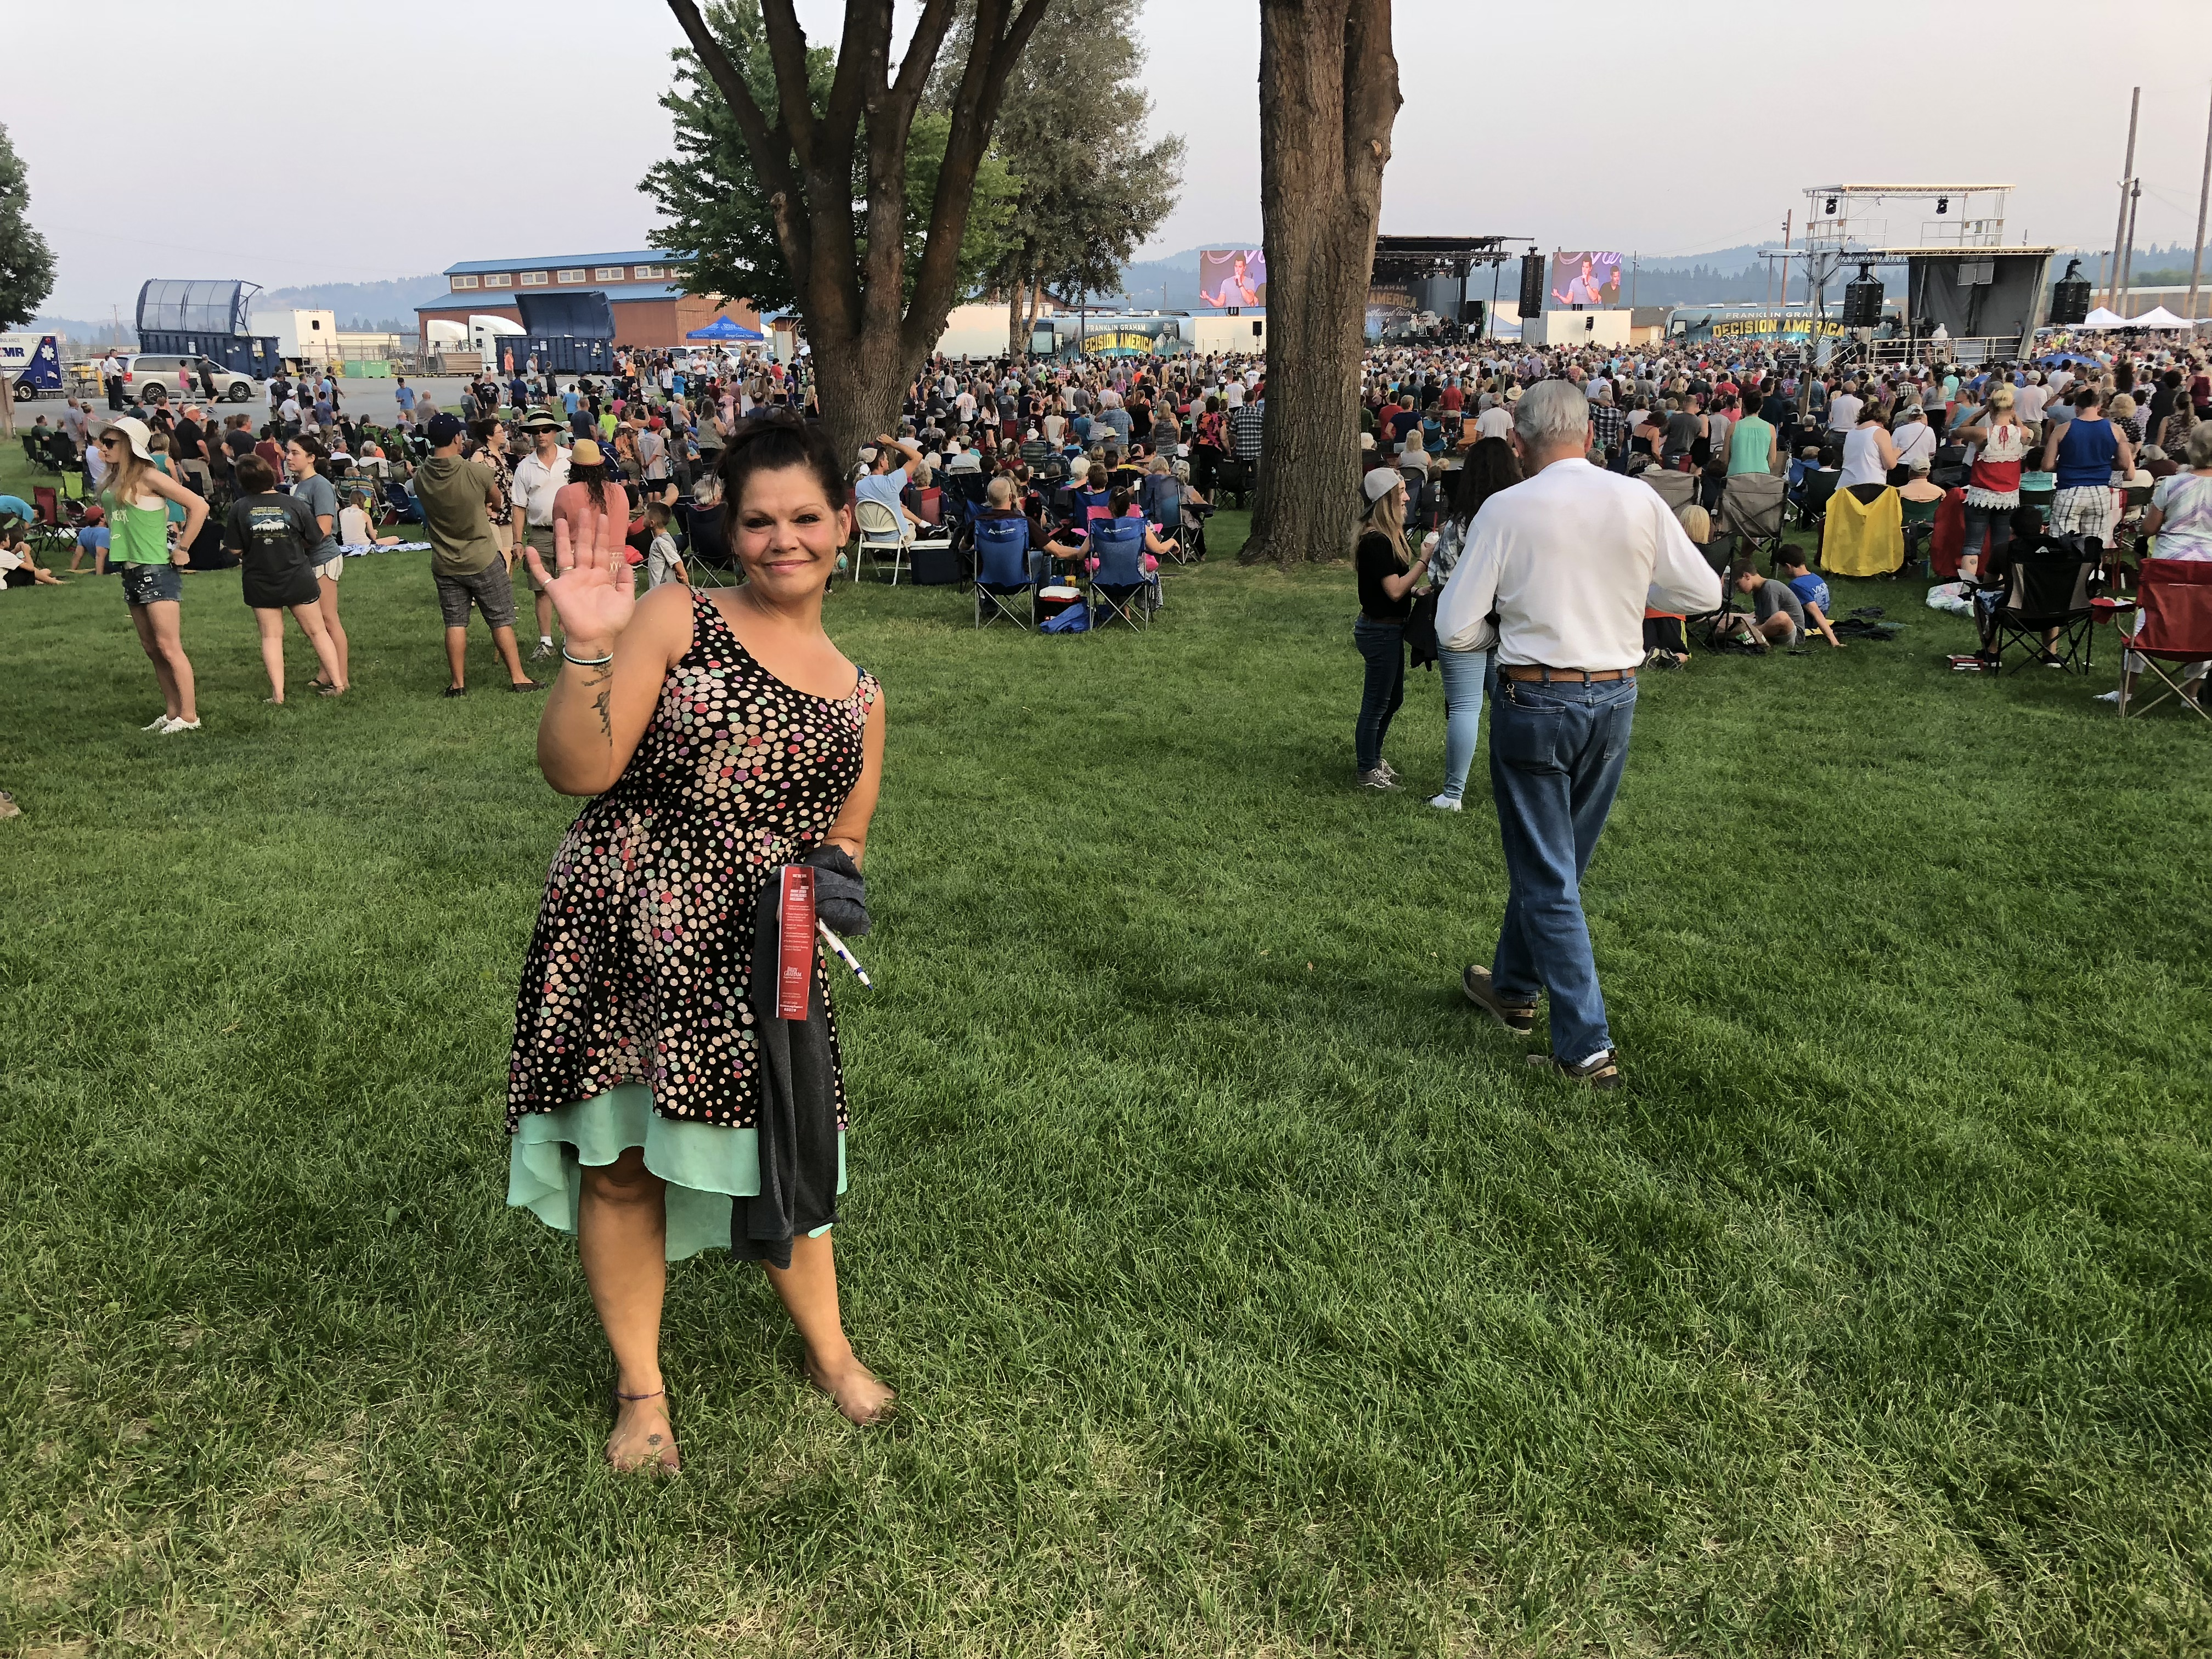 woman waving in Spokane at the Decision America event